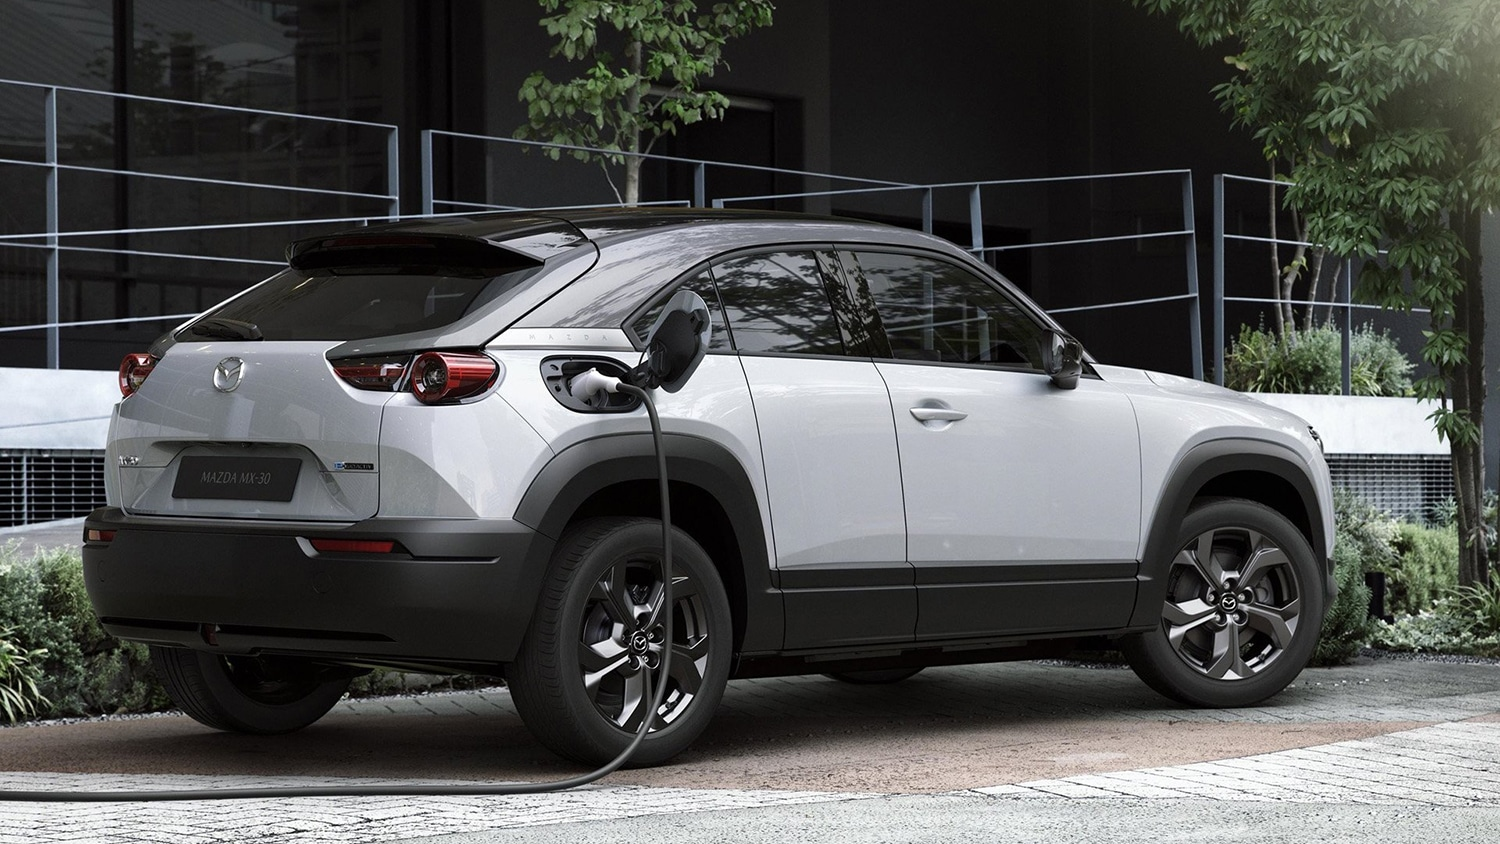 Mazda claims long-range EVs are more polluting than diesel cars